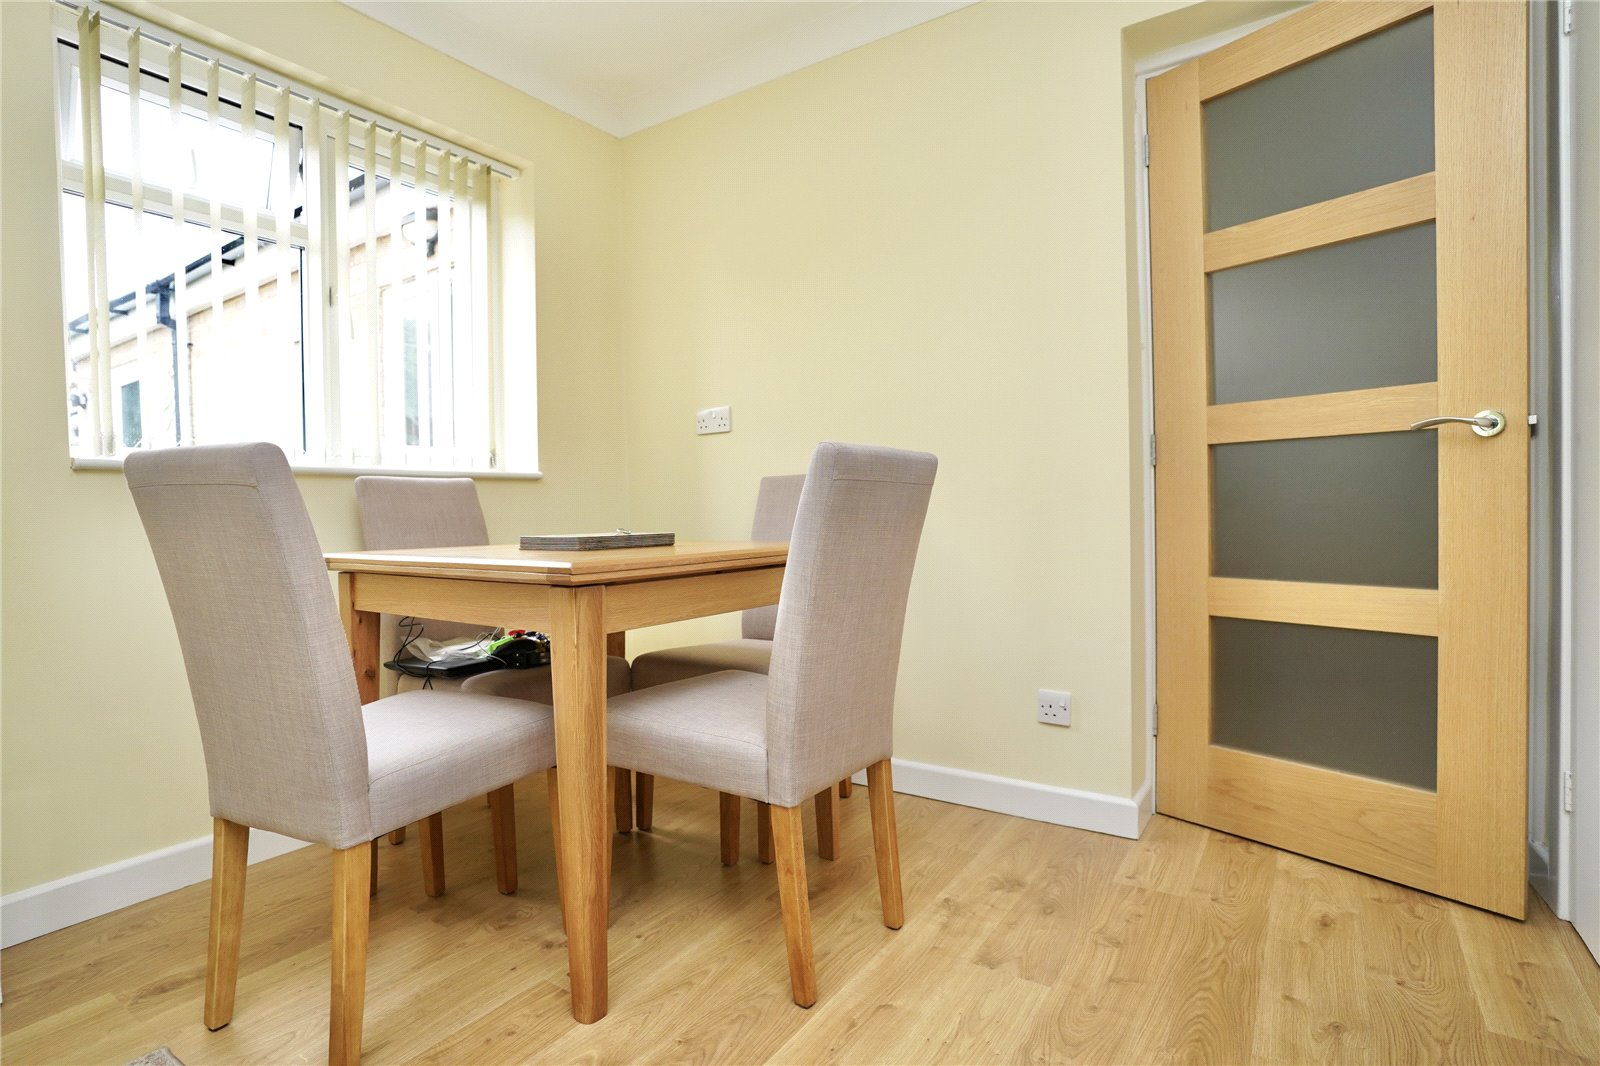 4 bed house for sale in Eaton Socon, PE19 8HU  - Property Image 5